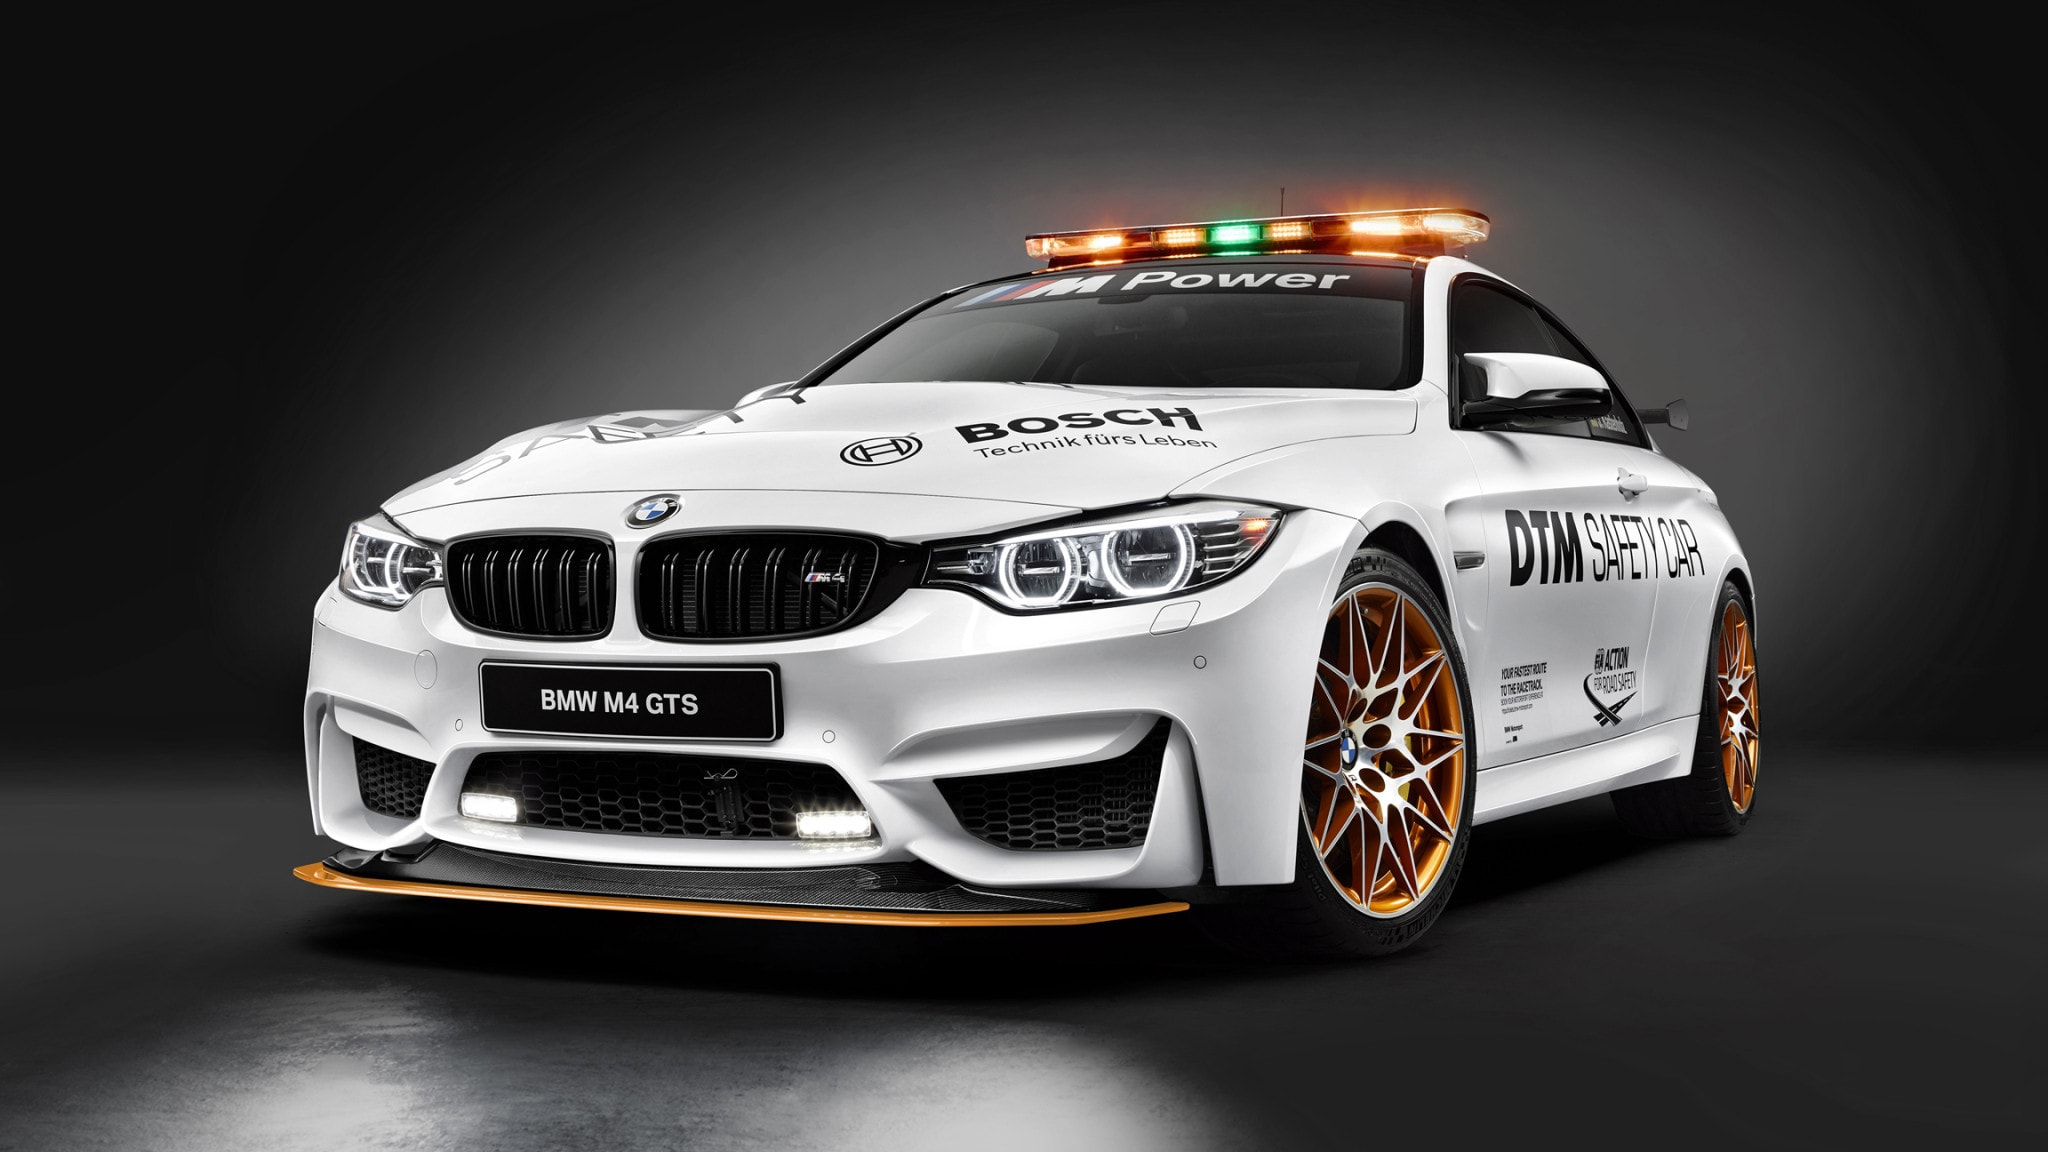 p90217500-highres-bmw-m4-gts-dtm-safet-1